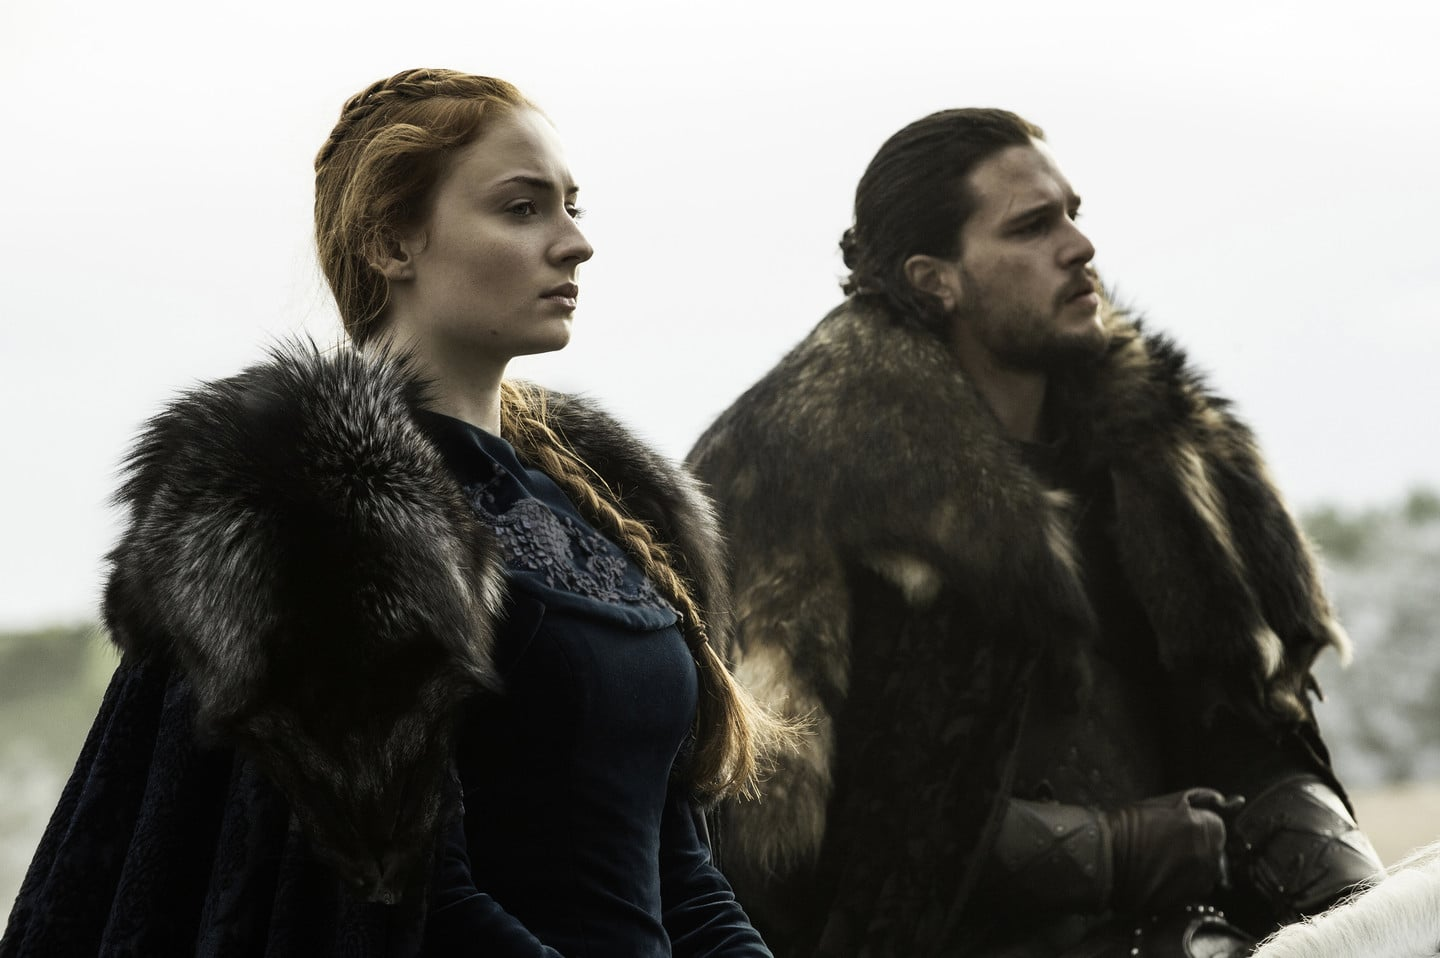 An HBO Subscription Cost of Nothing means free Game of Thrones